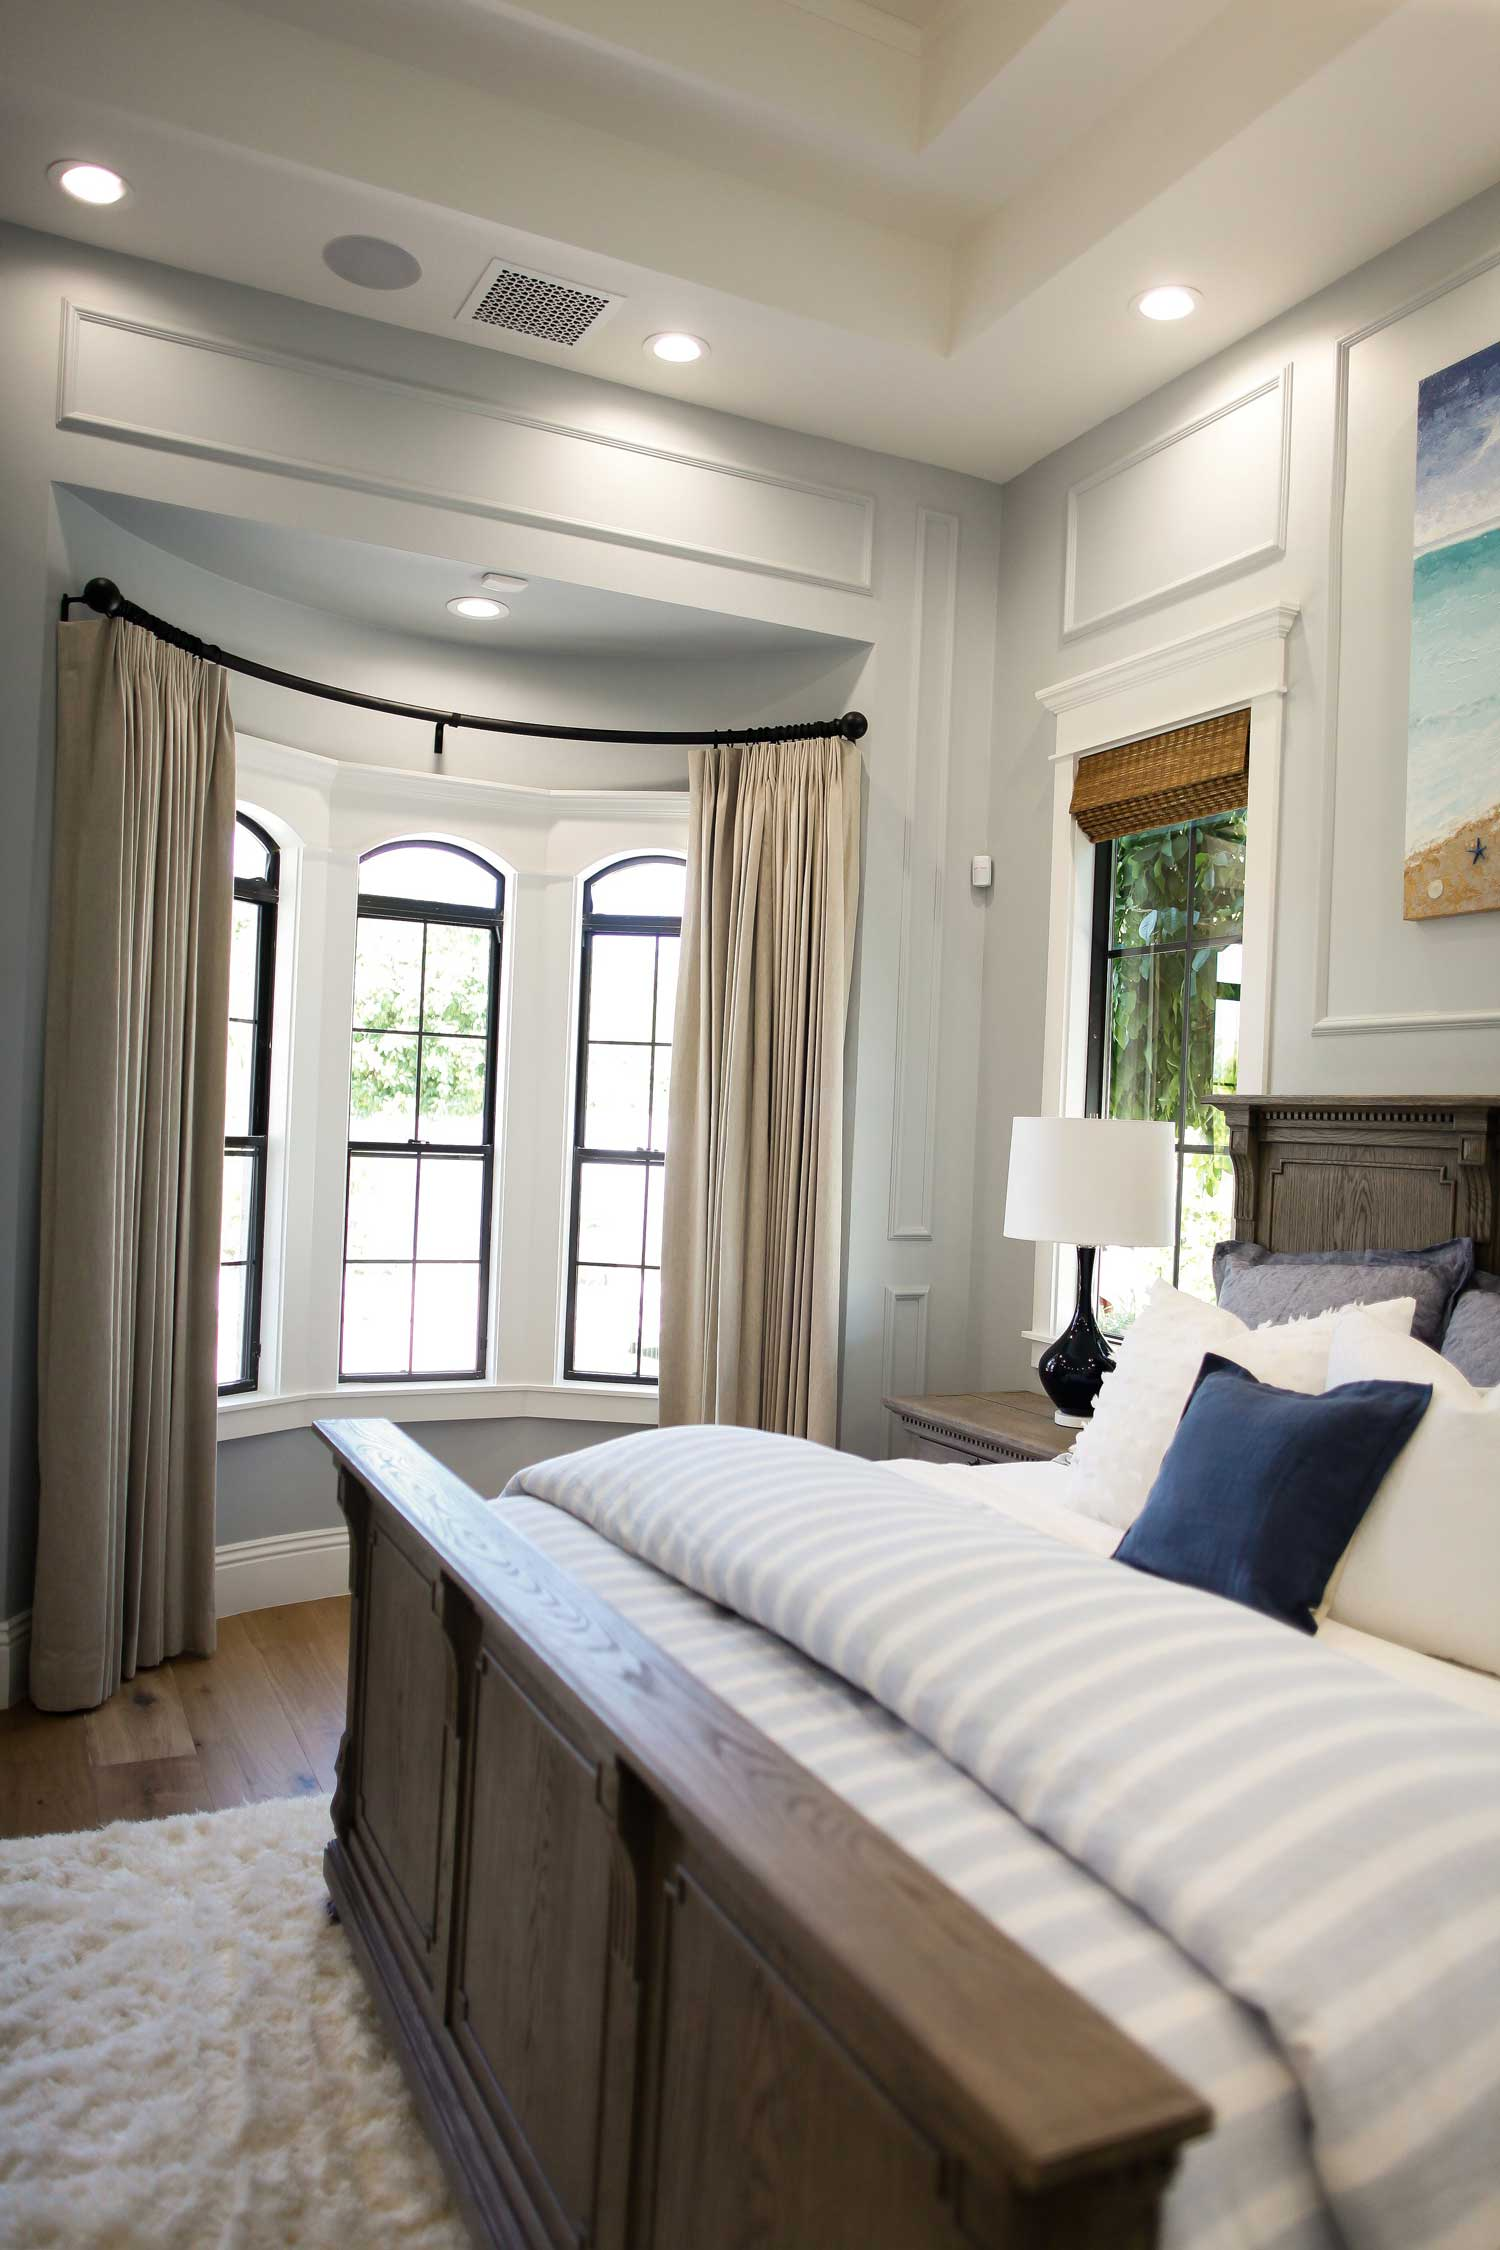 Master Bedroom Drapes on Curved Iron Rod